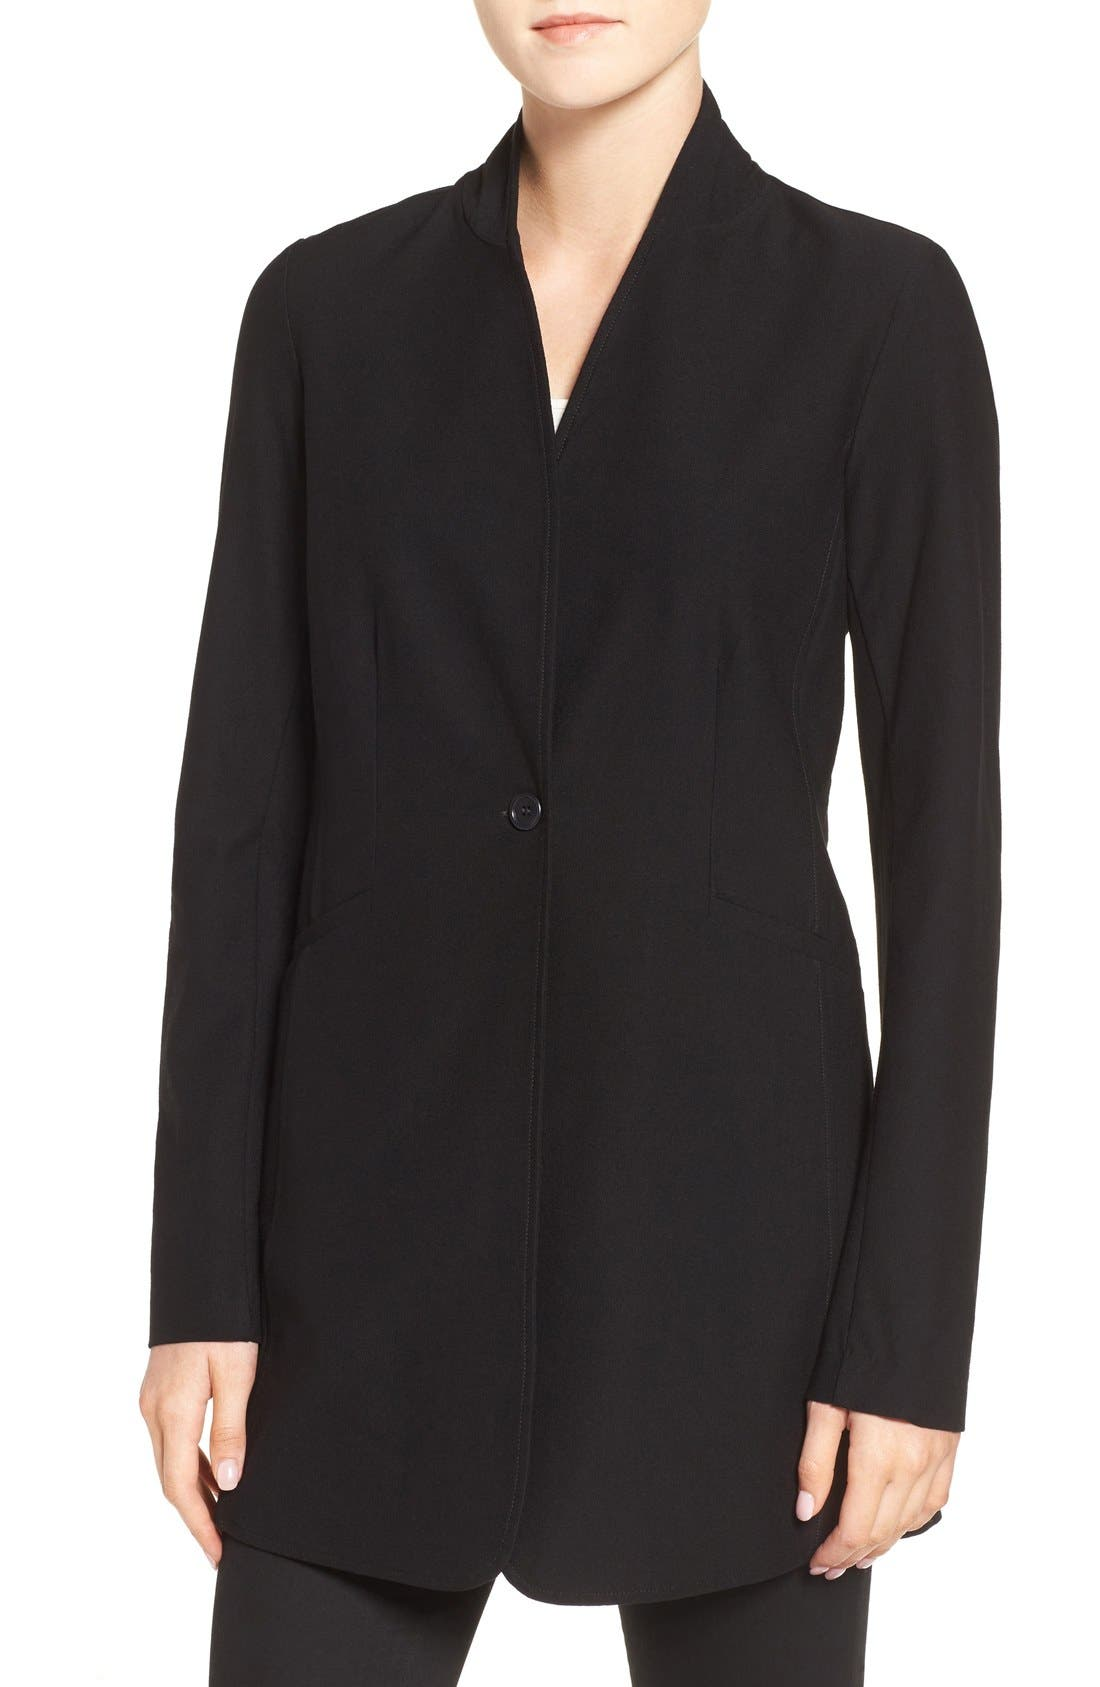 Washable Stretch Crepe Stand Collar Jacket,                         Main,                         color, Black